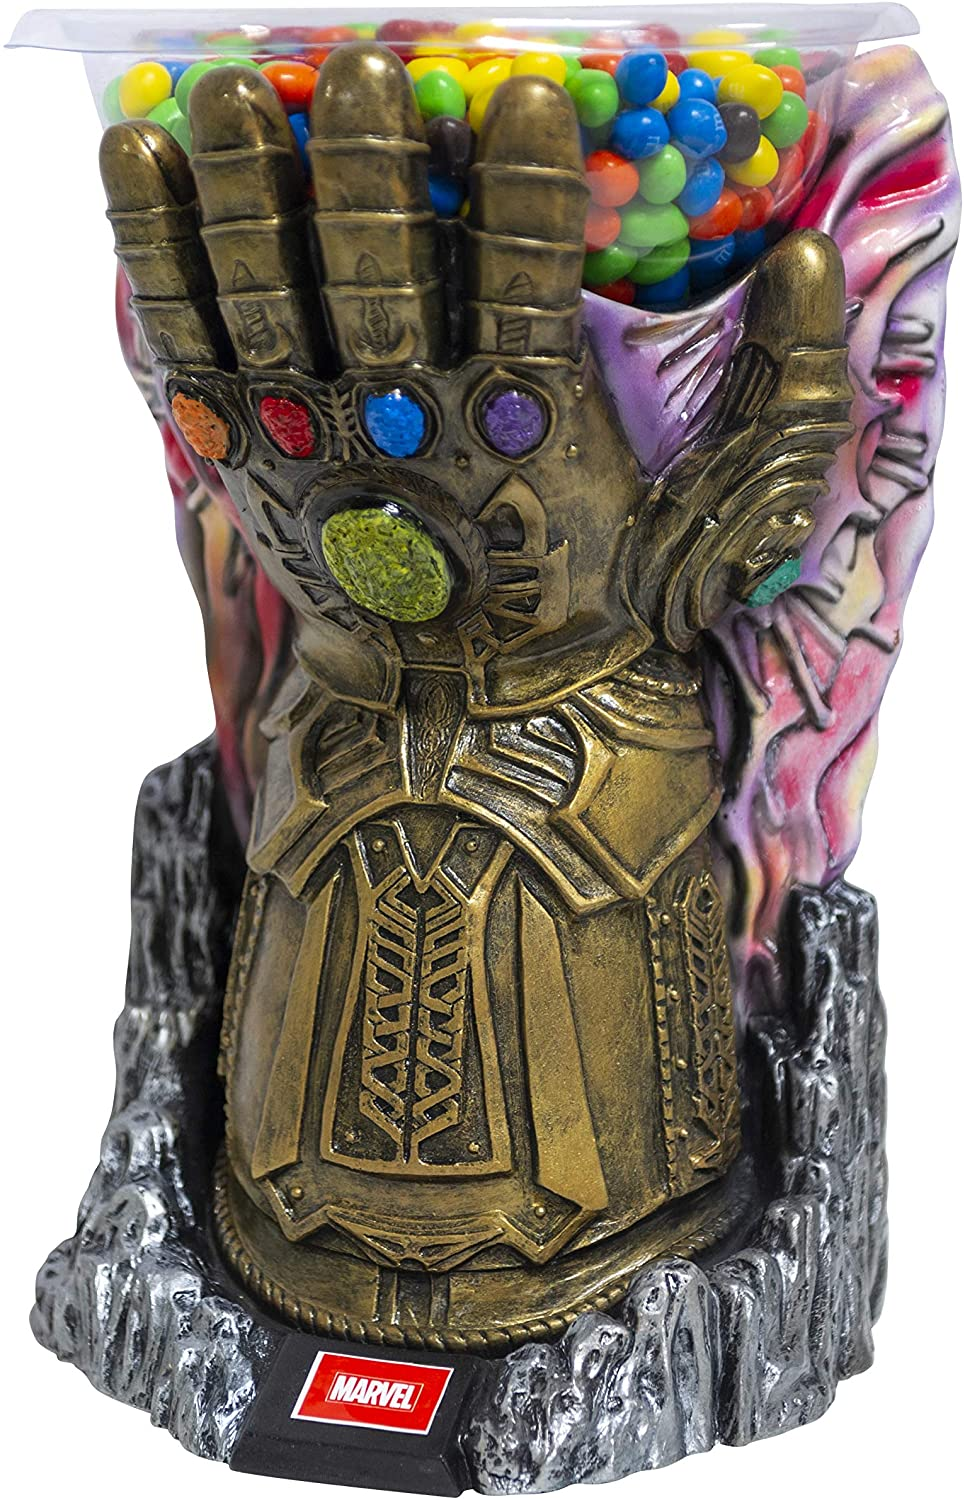 Marvel: Avengers Endgame Infinity Gauntlet Small Candy Bowl Holder